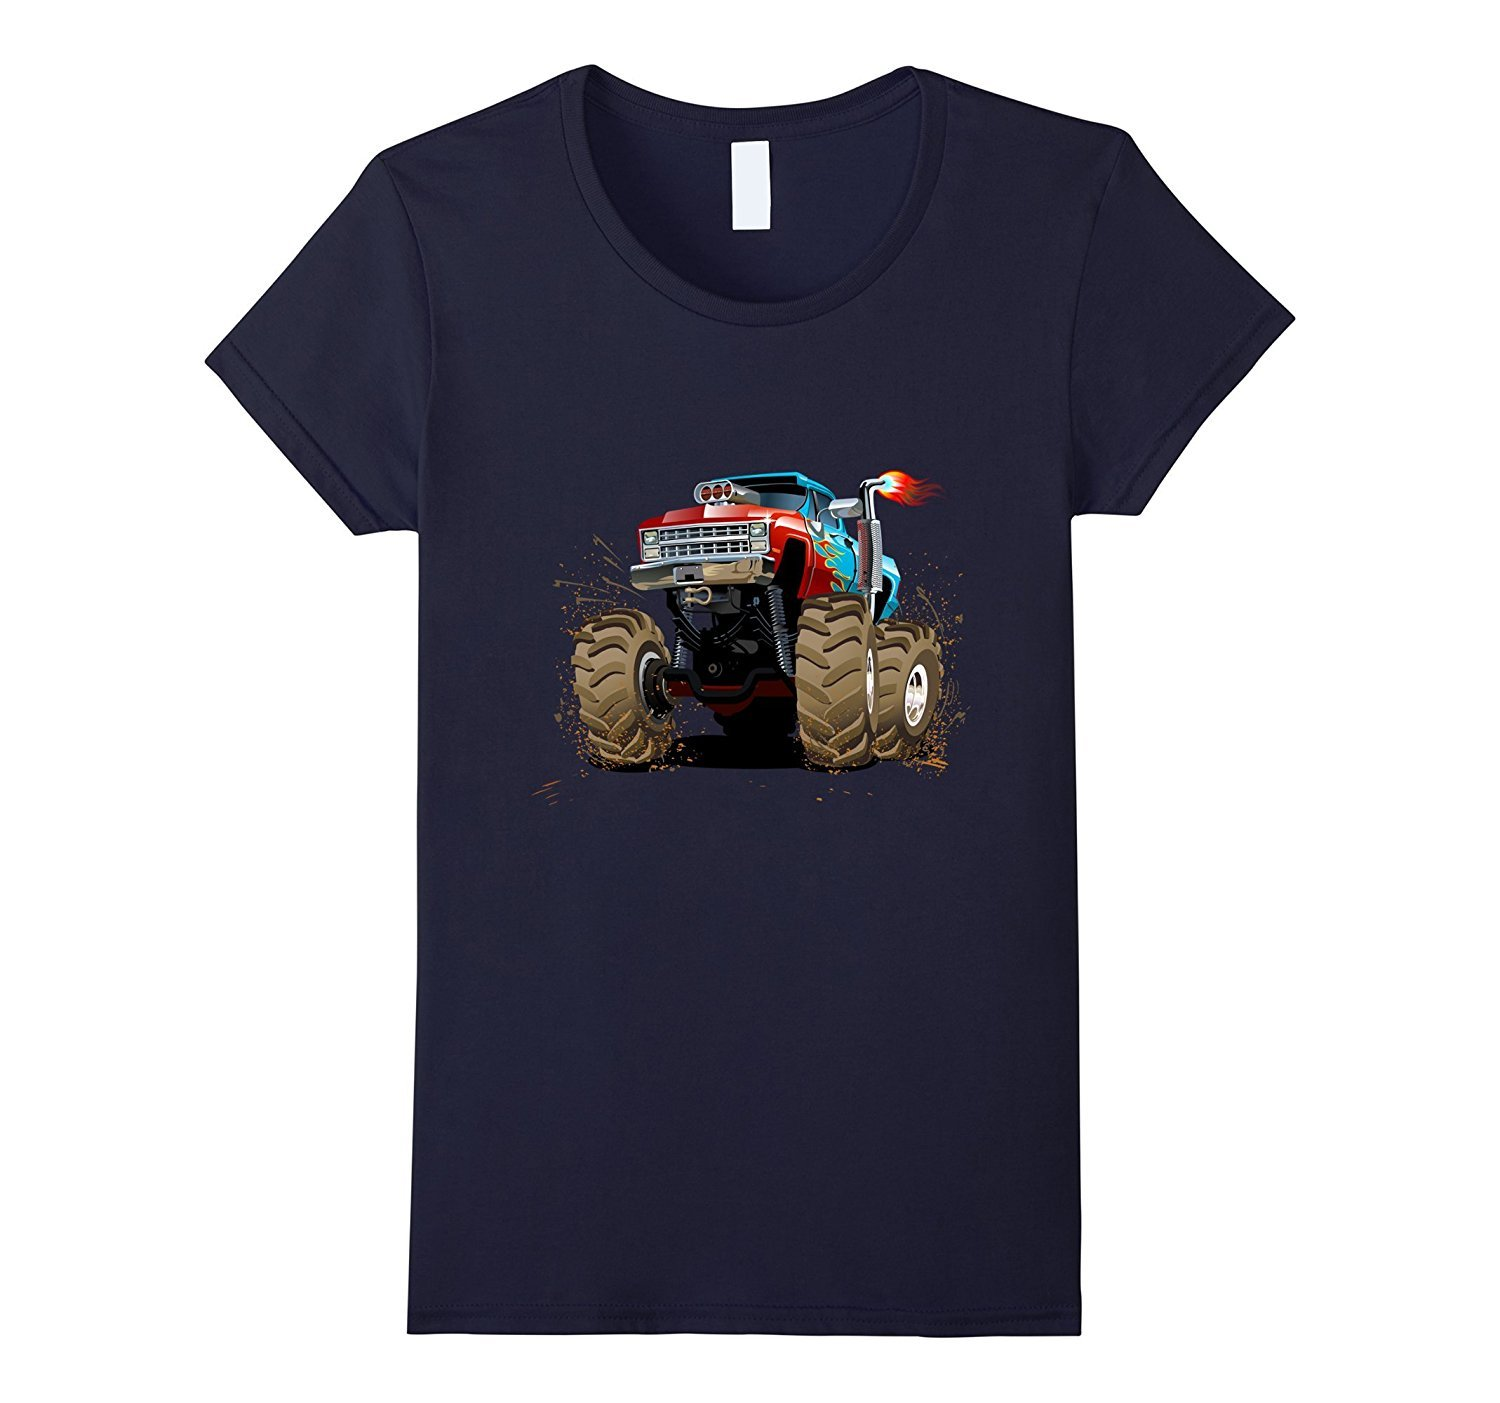 Diesel Monster Truck T-Shirt Bigfoot Trucking Diesel Big ...